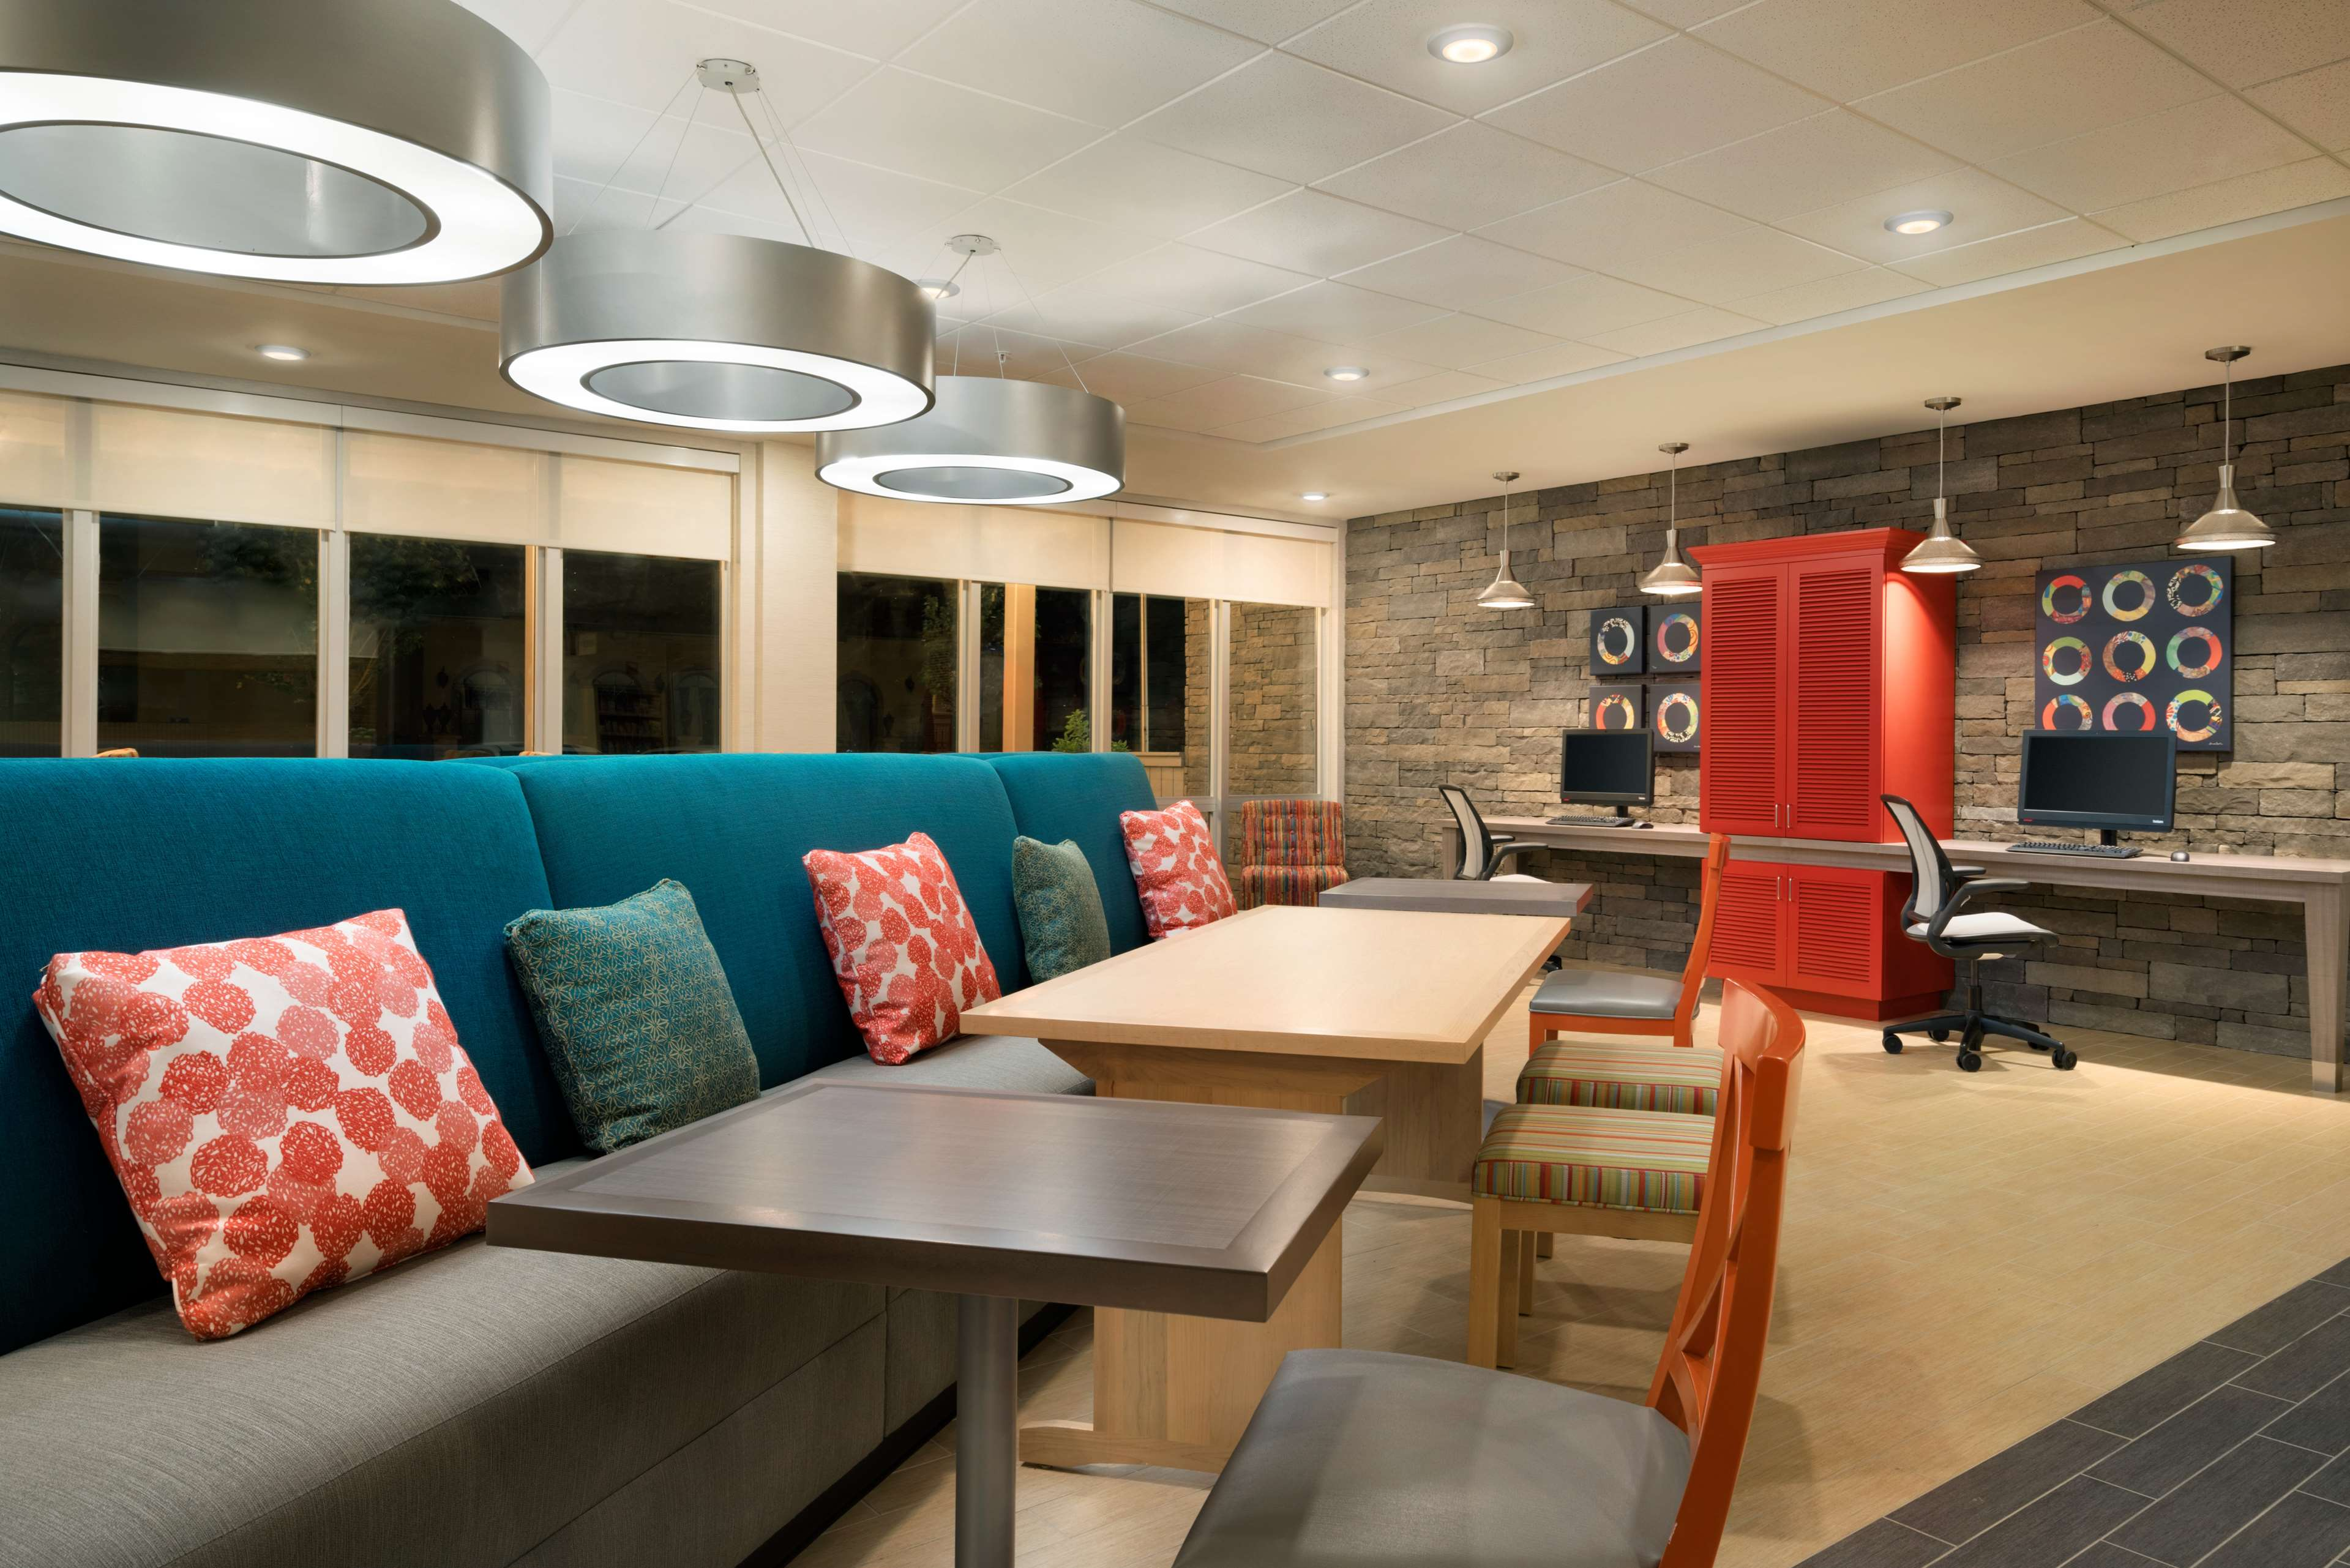 Home2 Suites by Hilton Roanoke image 7